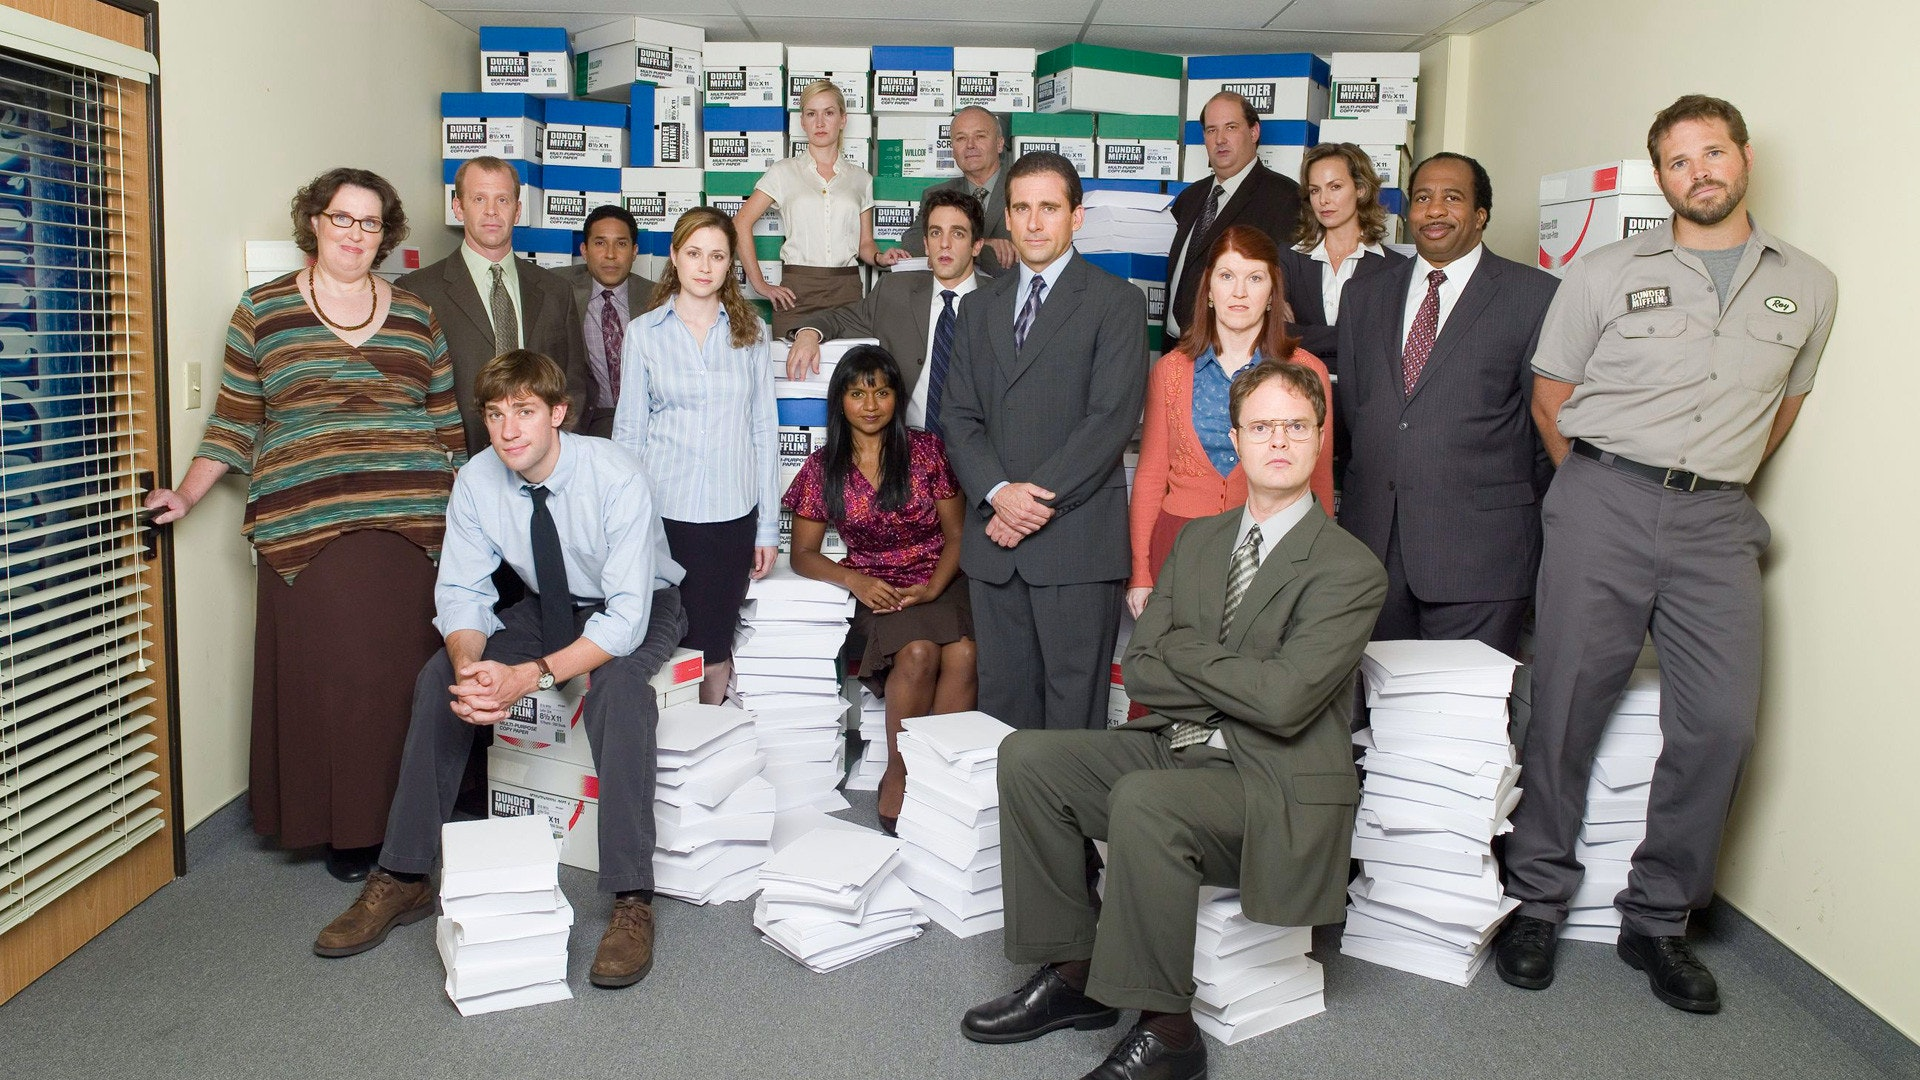 The Office (US) Soundtrack